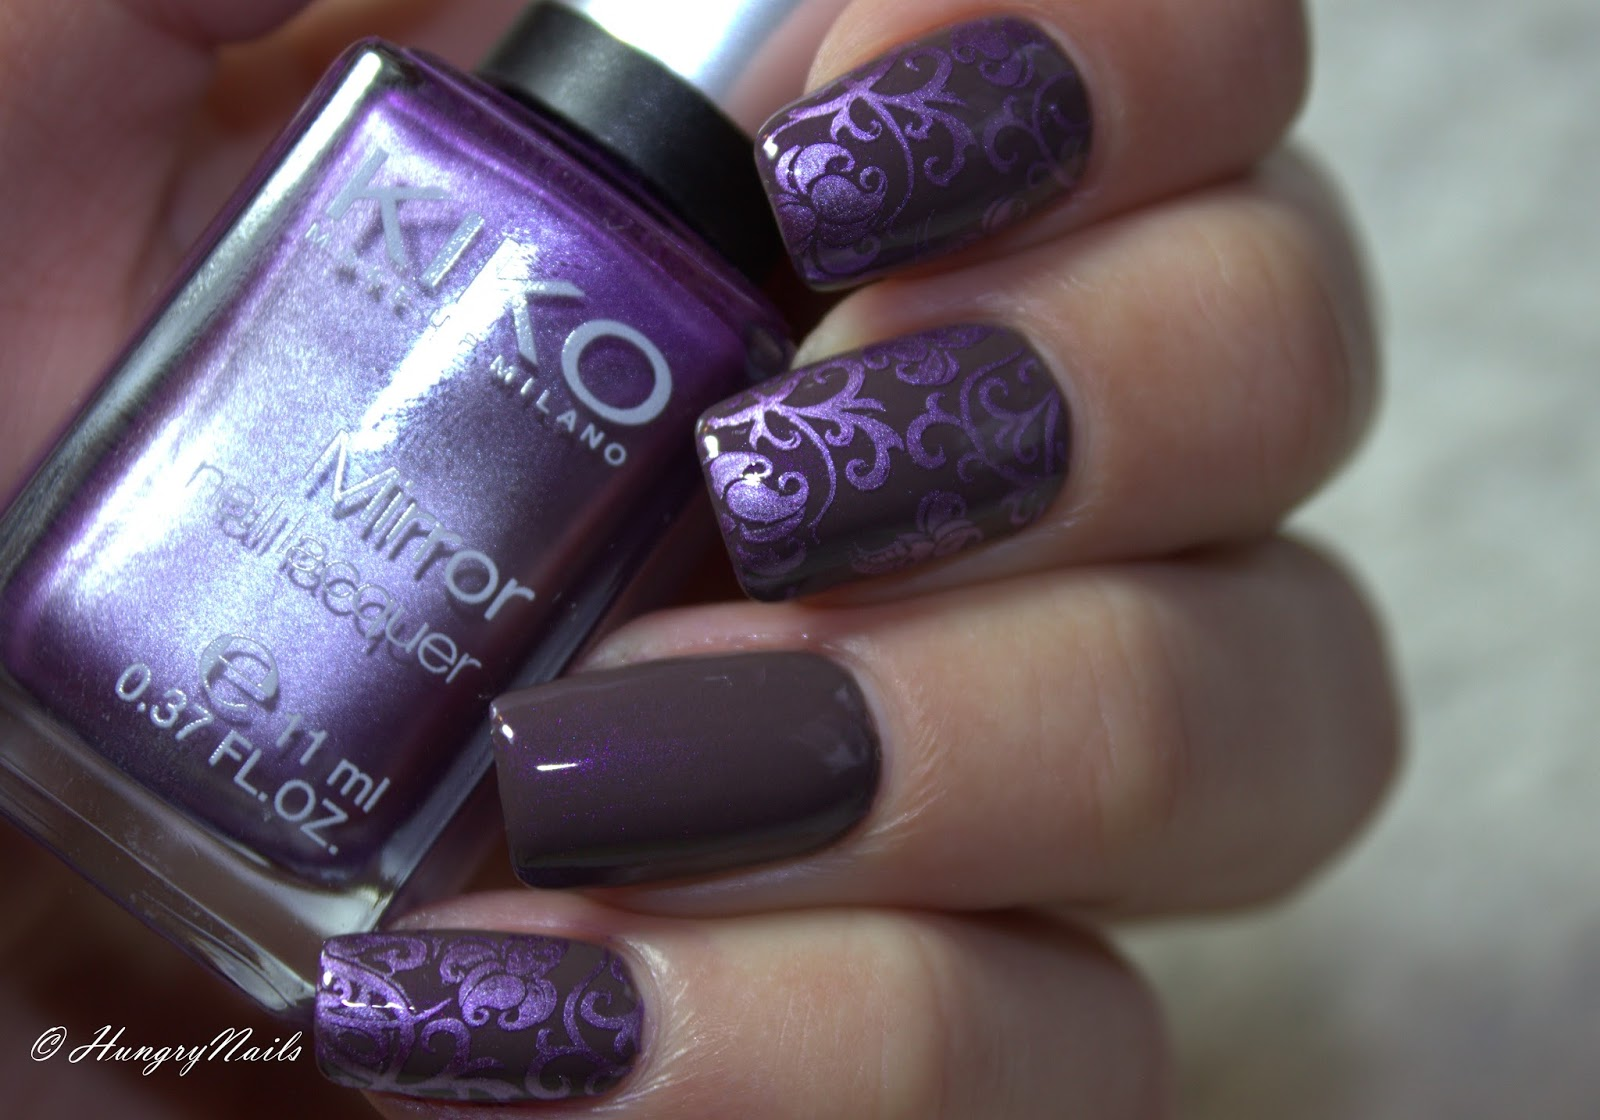 http://hungrynails.blogspot.de/2014/12/lacke-in-farbe-und-bunt-taupe.html